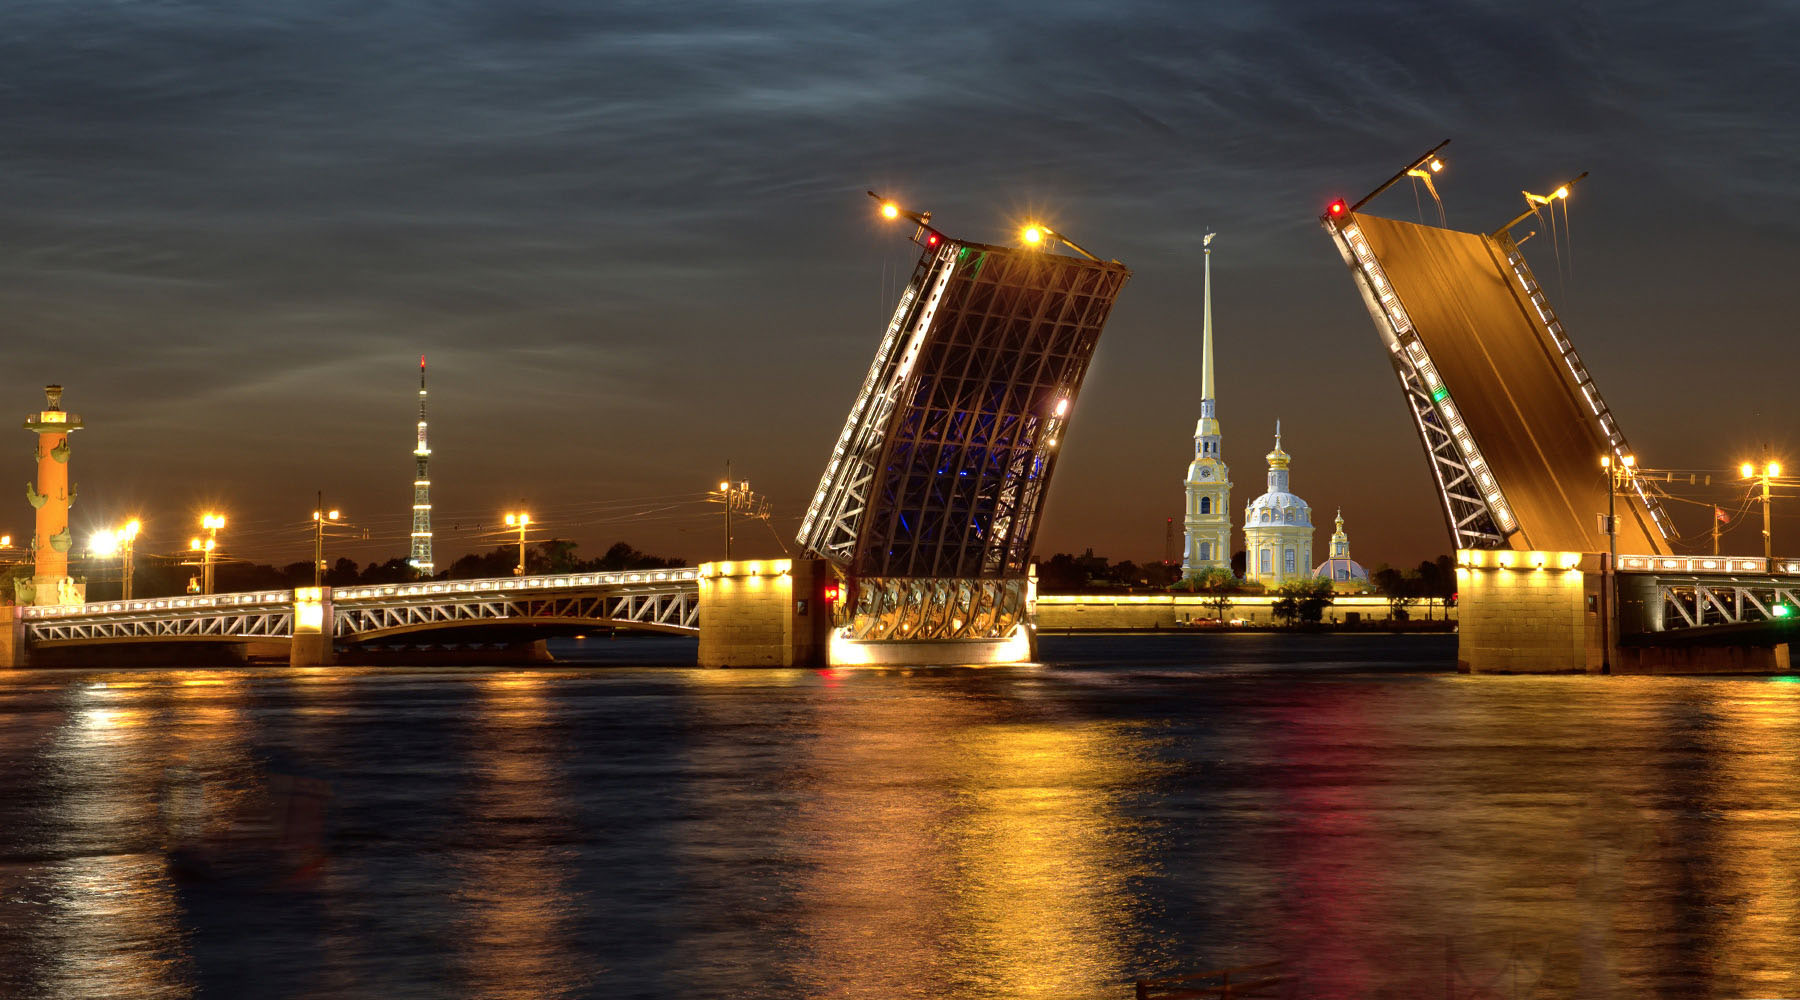 The Glories of St. Petersburg